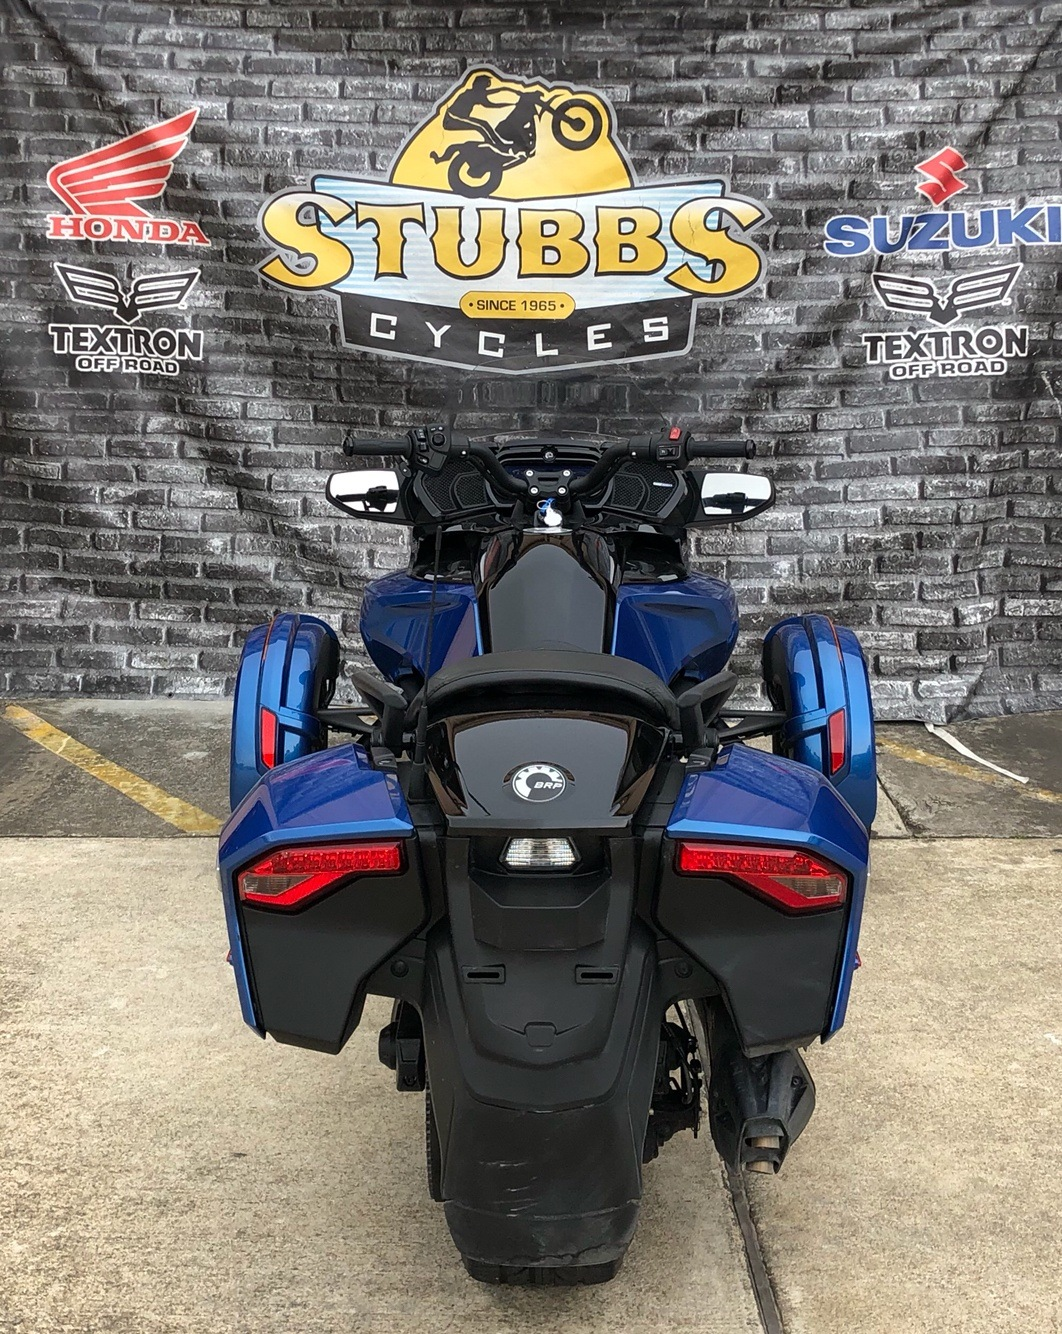 2018 Can-Am Spyder F3-T in Houston, Texas - Photo 3